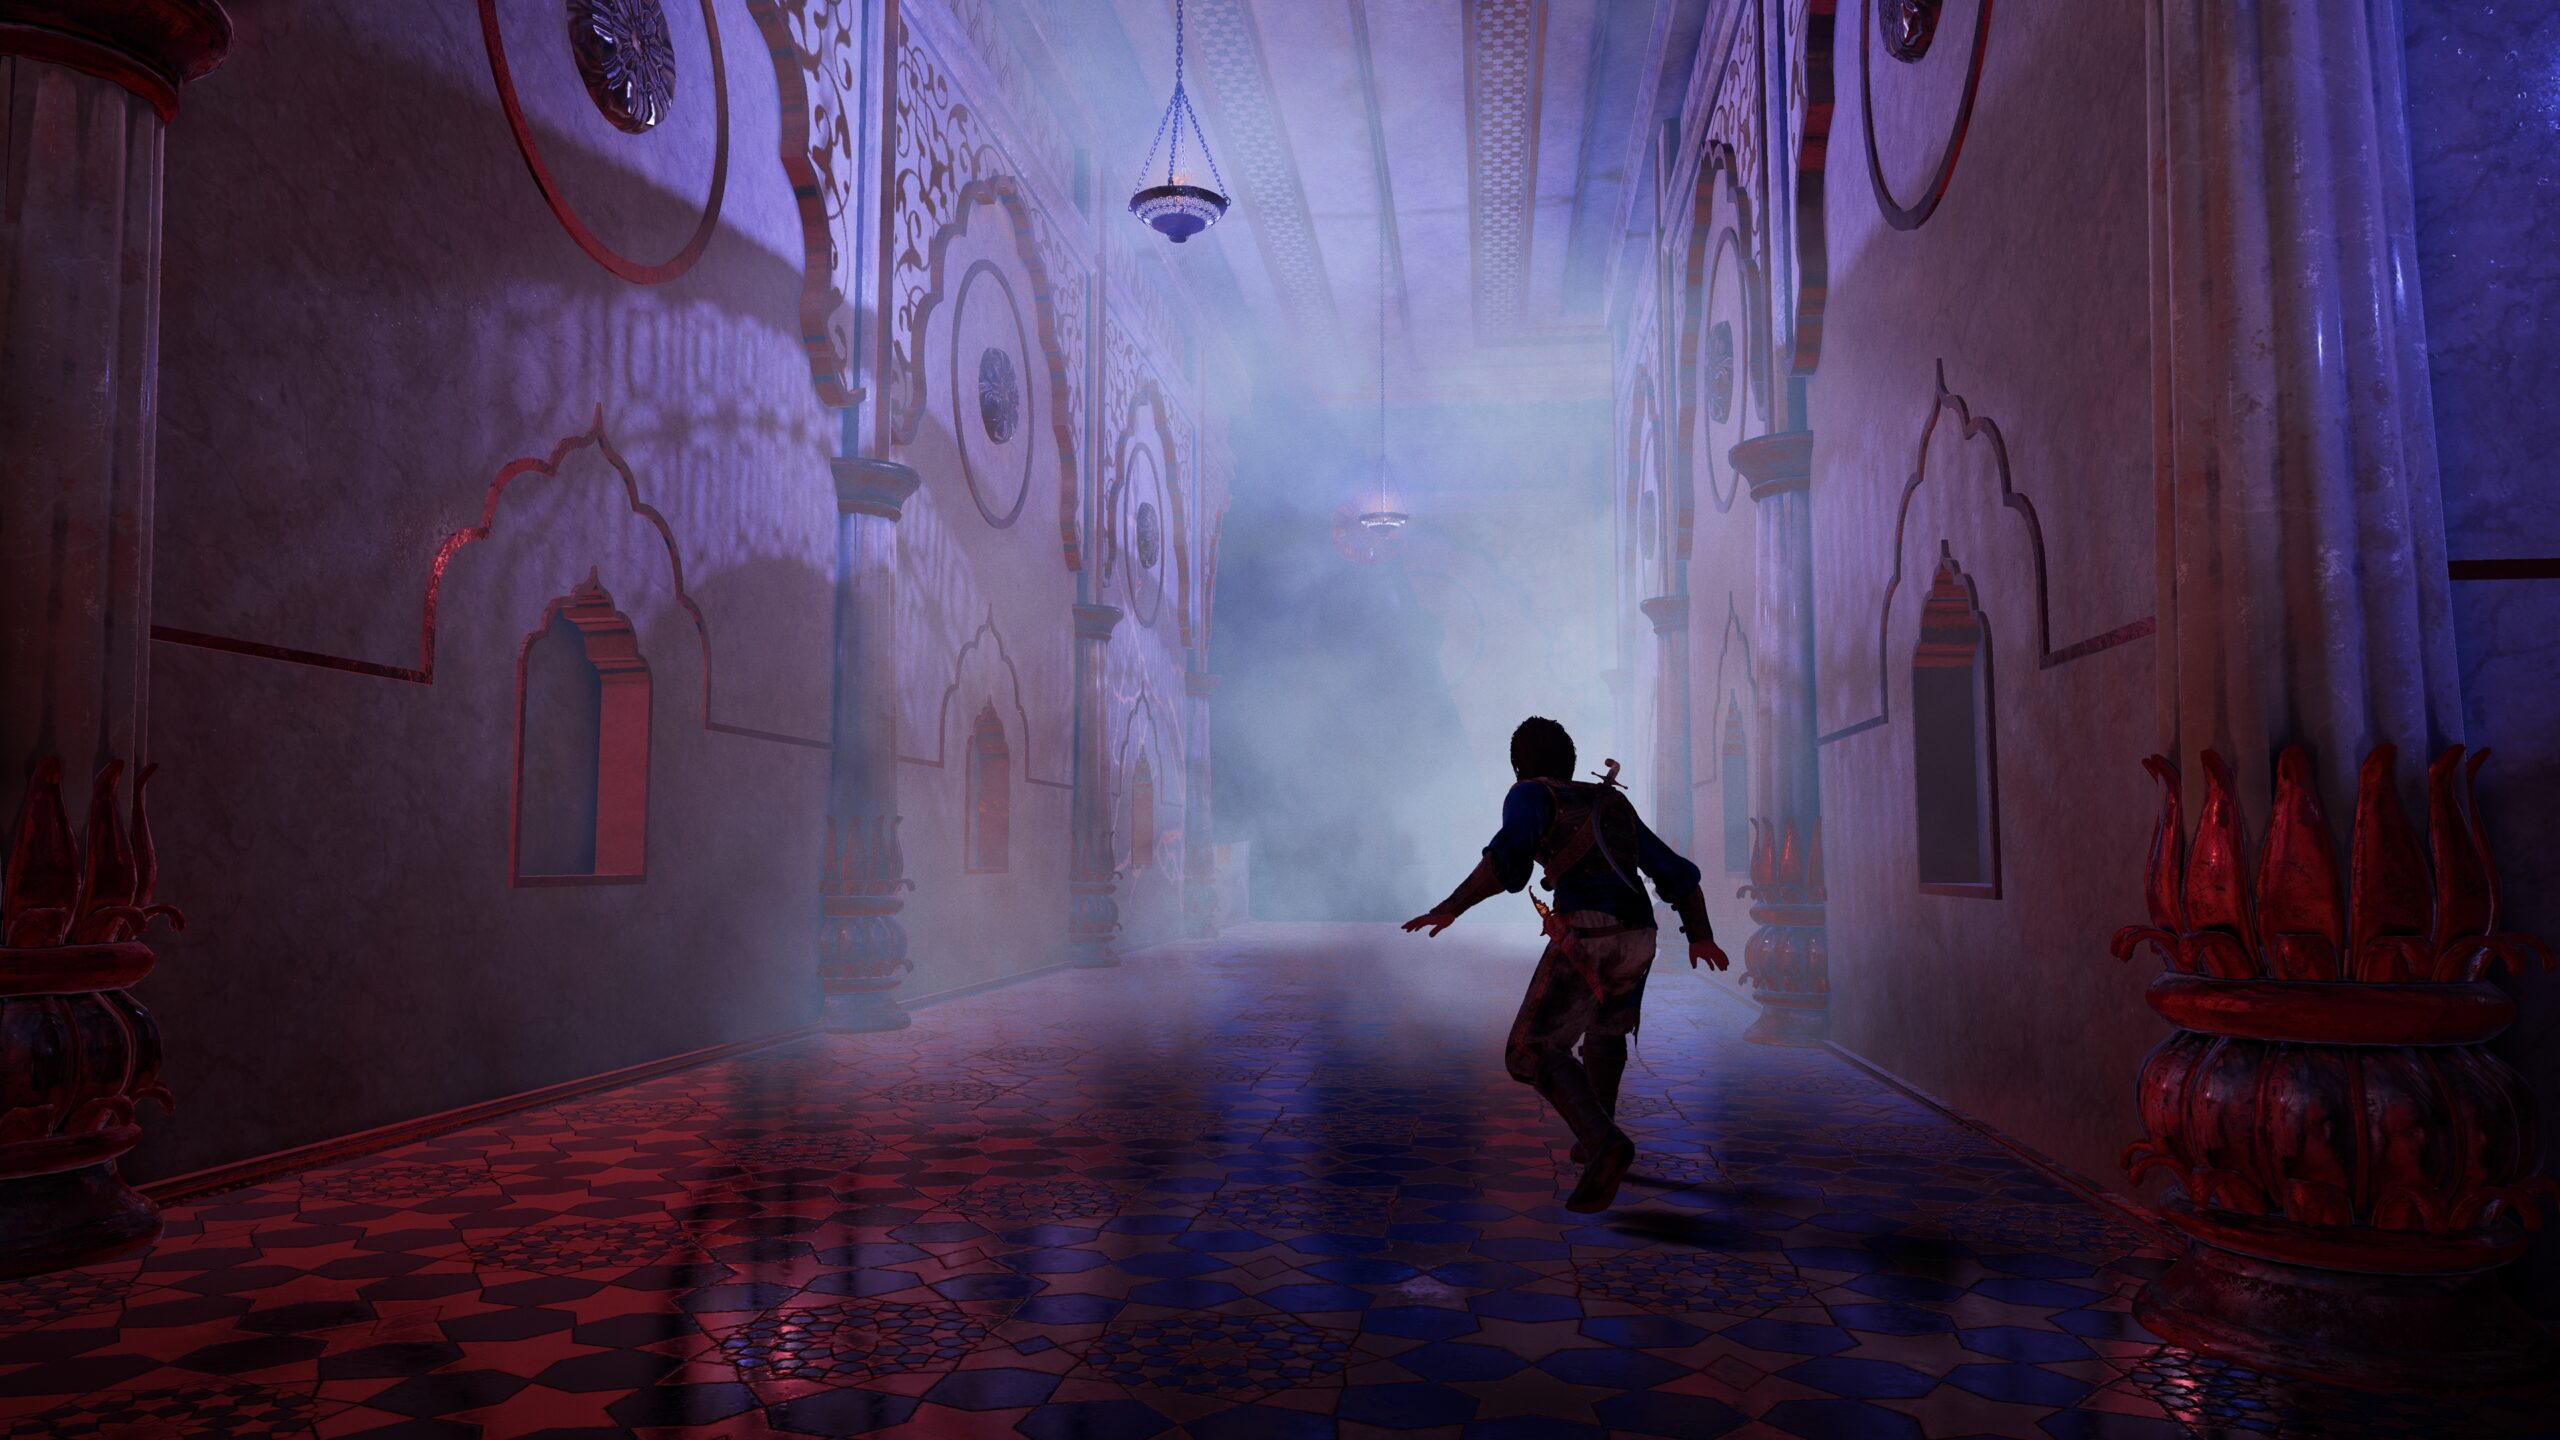 Prince-of-Persia-The-Sands-of-Time-Remake_2020_09-10-20_002